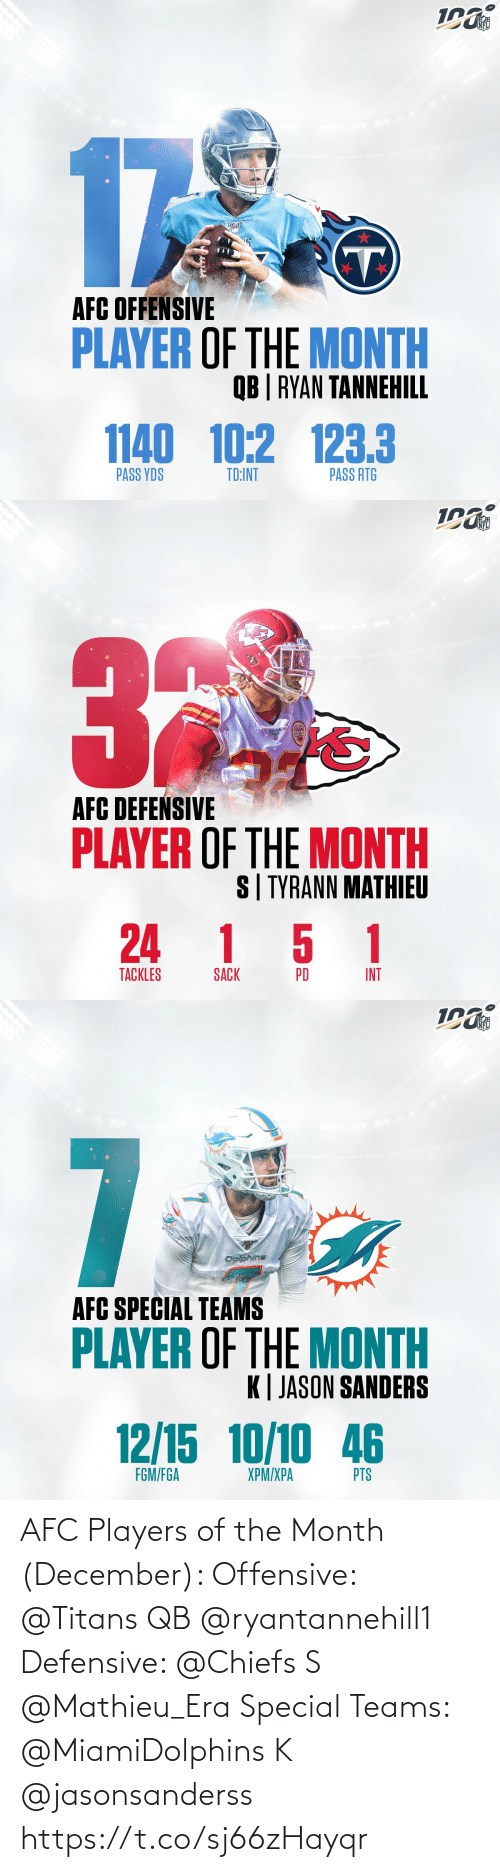 Sanders: NFL  17  AFC OFFENSIVE  PLAYER OF THE MONTH  QB | RYAN TANNEHILL  1140 10:2 123.3  PASS RTG  PASS YDS  TD:INT   NFL  AFC DEFEŃSIVE  PLAYER OF THE MONTH  S| TYRANN MATHIEU  24 1 5 1  TACKLES  INT  PD  SACK   NFL  7  Dolphins  AFC SPECIAL TEAMS  PLAYER OF THE MONTH  K| JASON SANDERS  12/15 10/10 46  FGM/FGA  XPM/XPA  PTS AFC Players of the Month (December):   Offensive: @Titans QB @ryantannehill1    Defensive: @Chiefs S @Mathieu_Era   Special Teams: @MiamiDolphins K @jasonsanderss https://t.co/sj66zHayqr